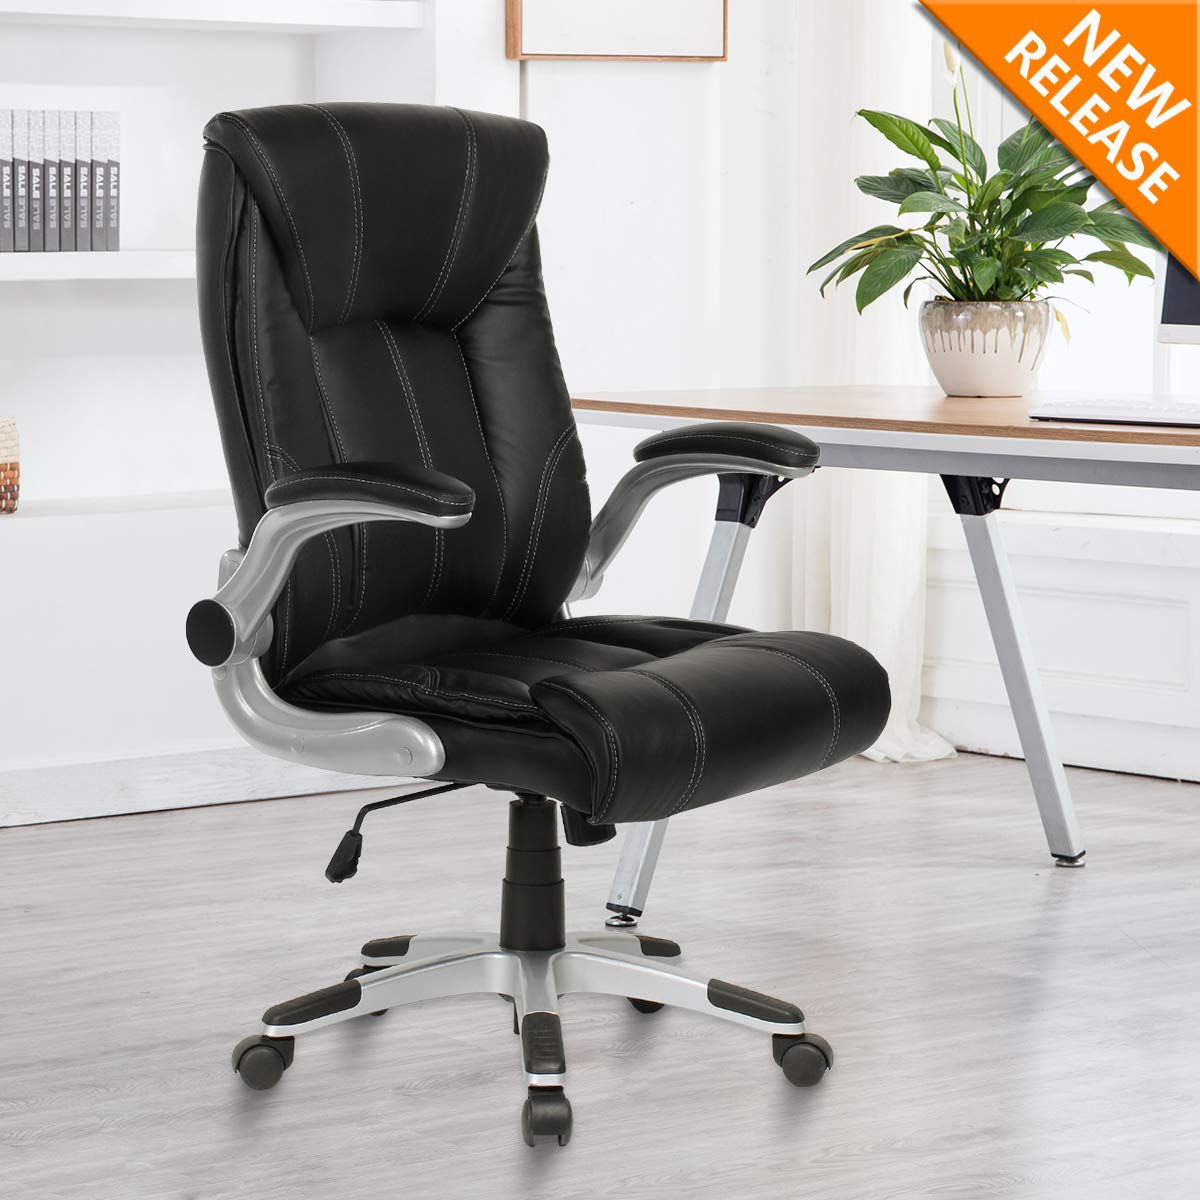 YAMASORO Ergonomic High-Back Executive Office Chair PU Leather Computer Desk Chair with Flip-up Arms and Back Support